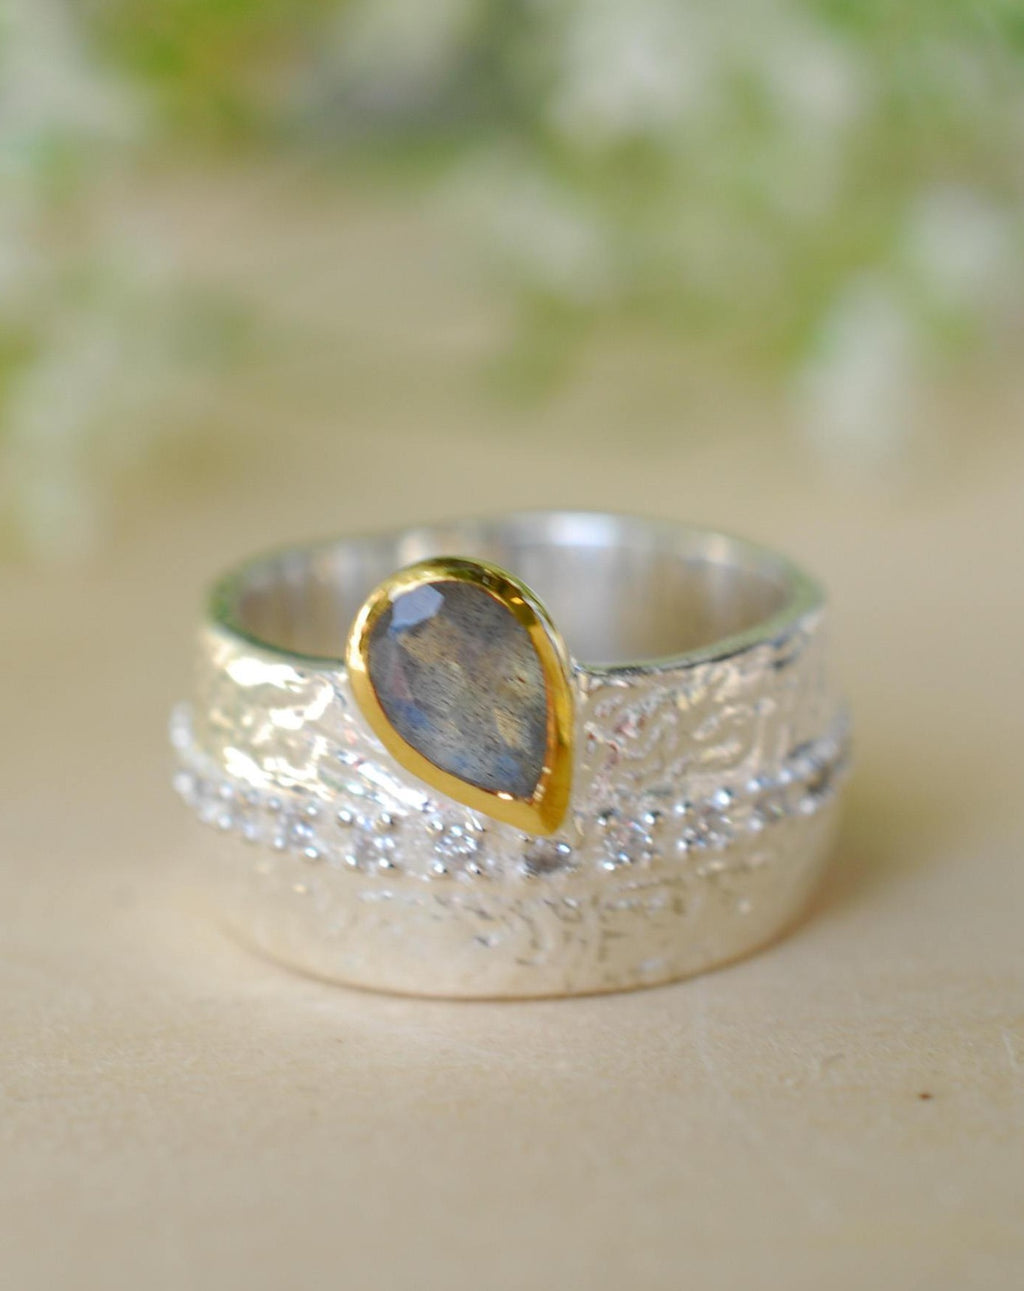 Rainbow Labradorite Ring * Sterling Silver 925 * Boho * Organic * Gold Vermeil * Mix metals* Gypsy * Hammered Band * Cubic Zirconia BJR201